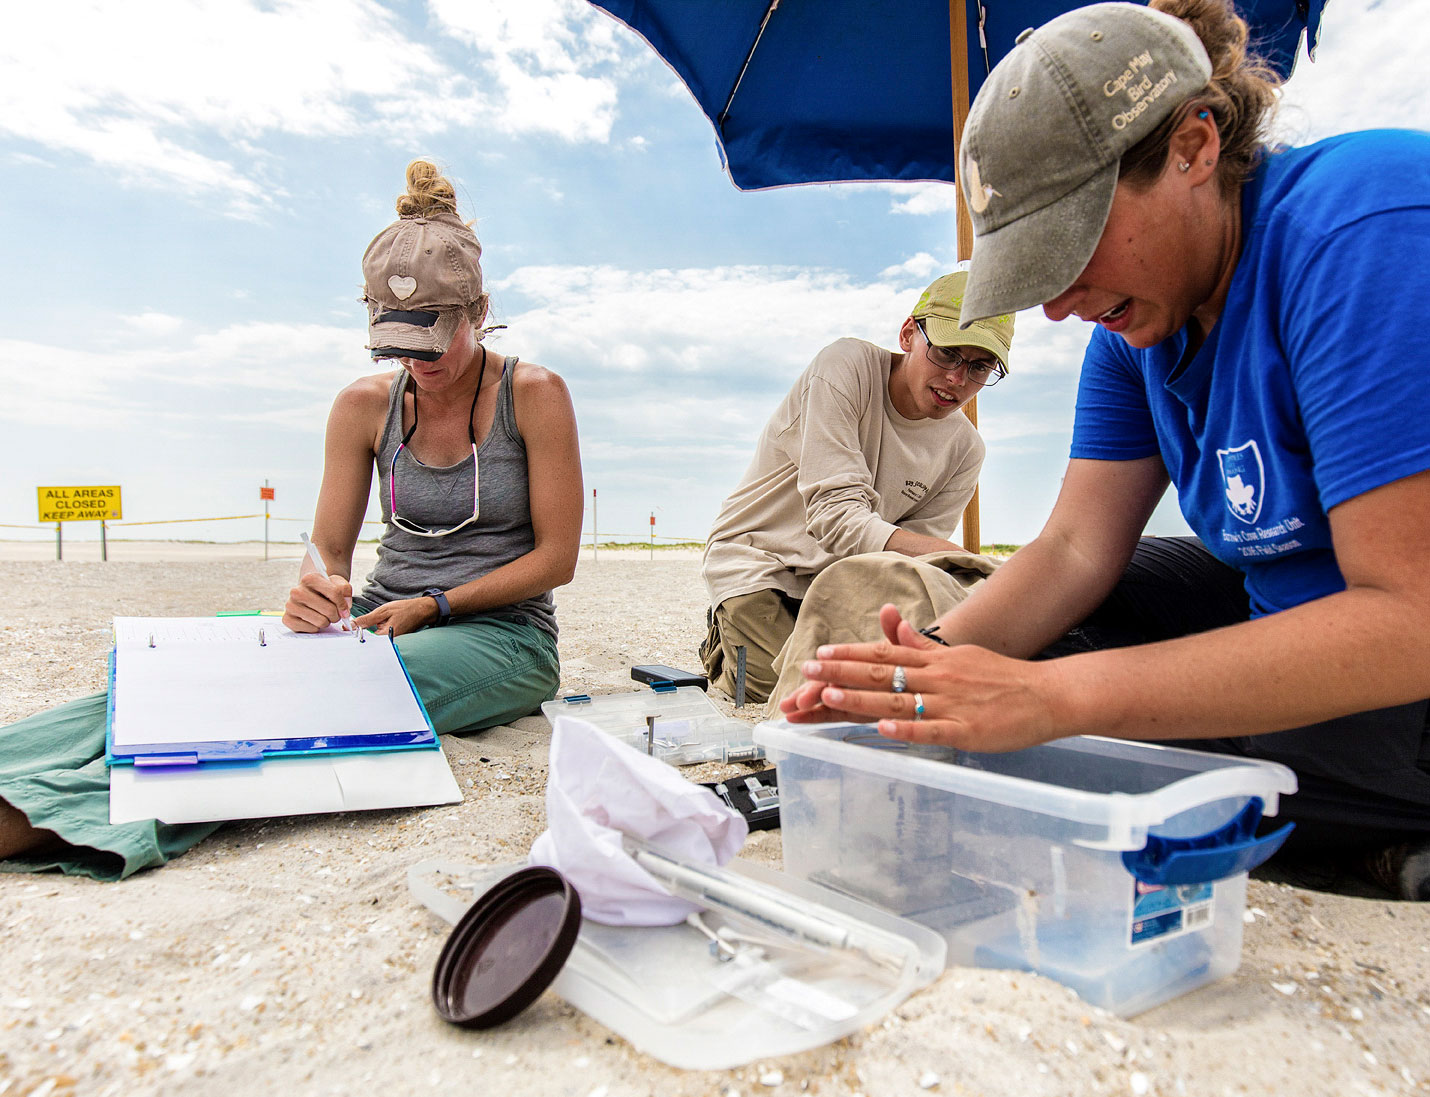 Michelle Stantial and team recording bird data the old-fashioned way. Jim Verhagen